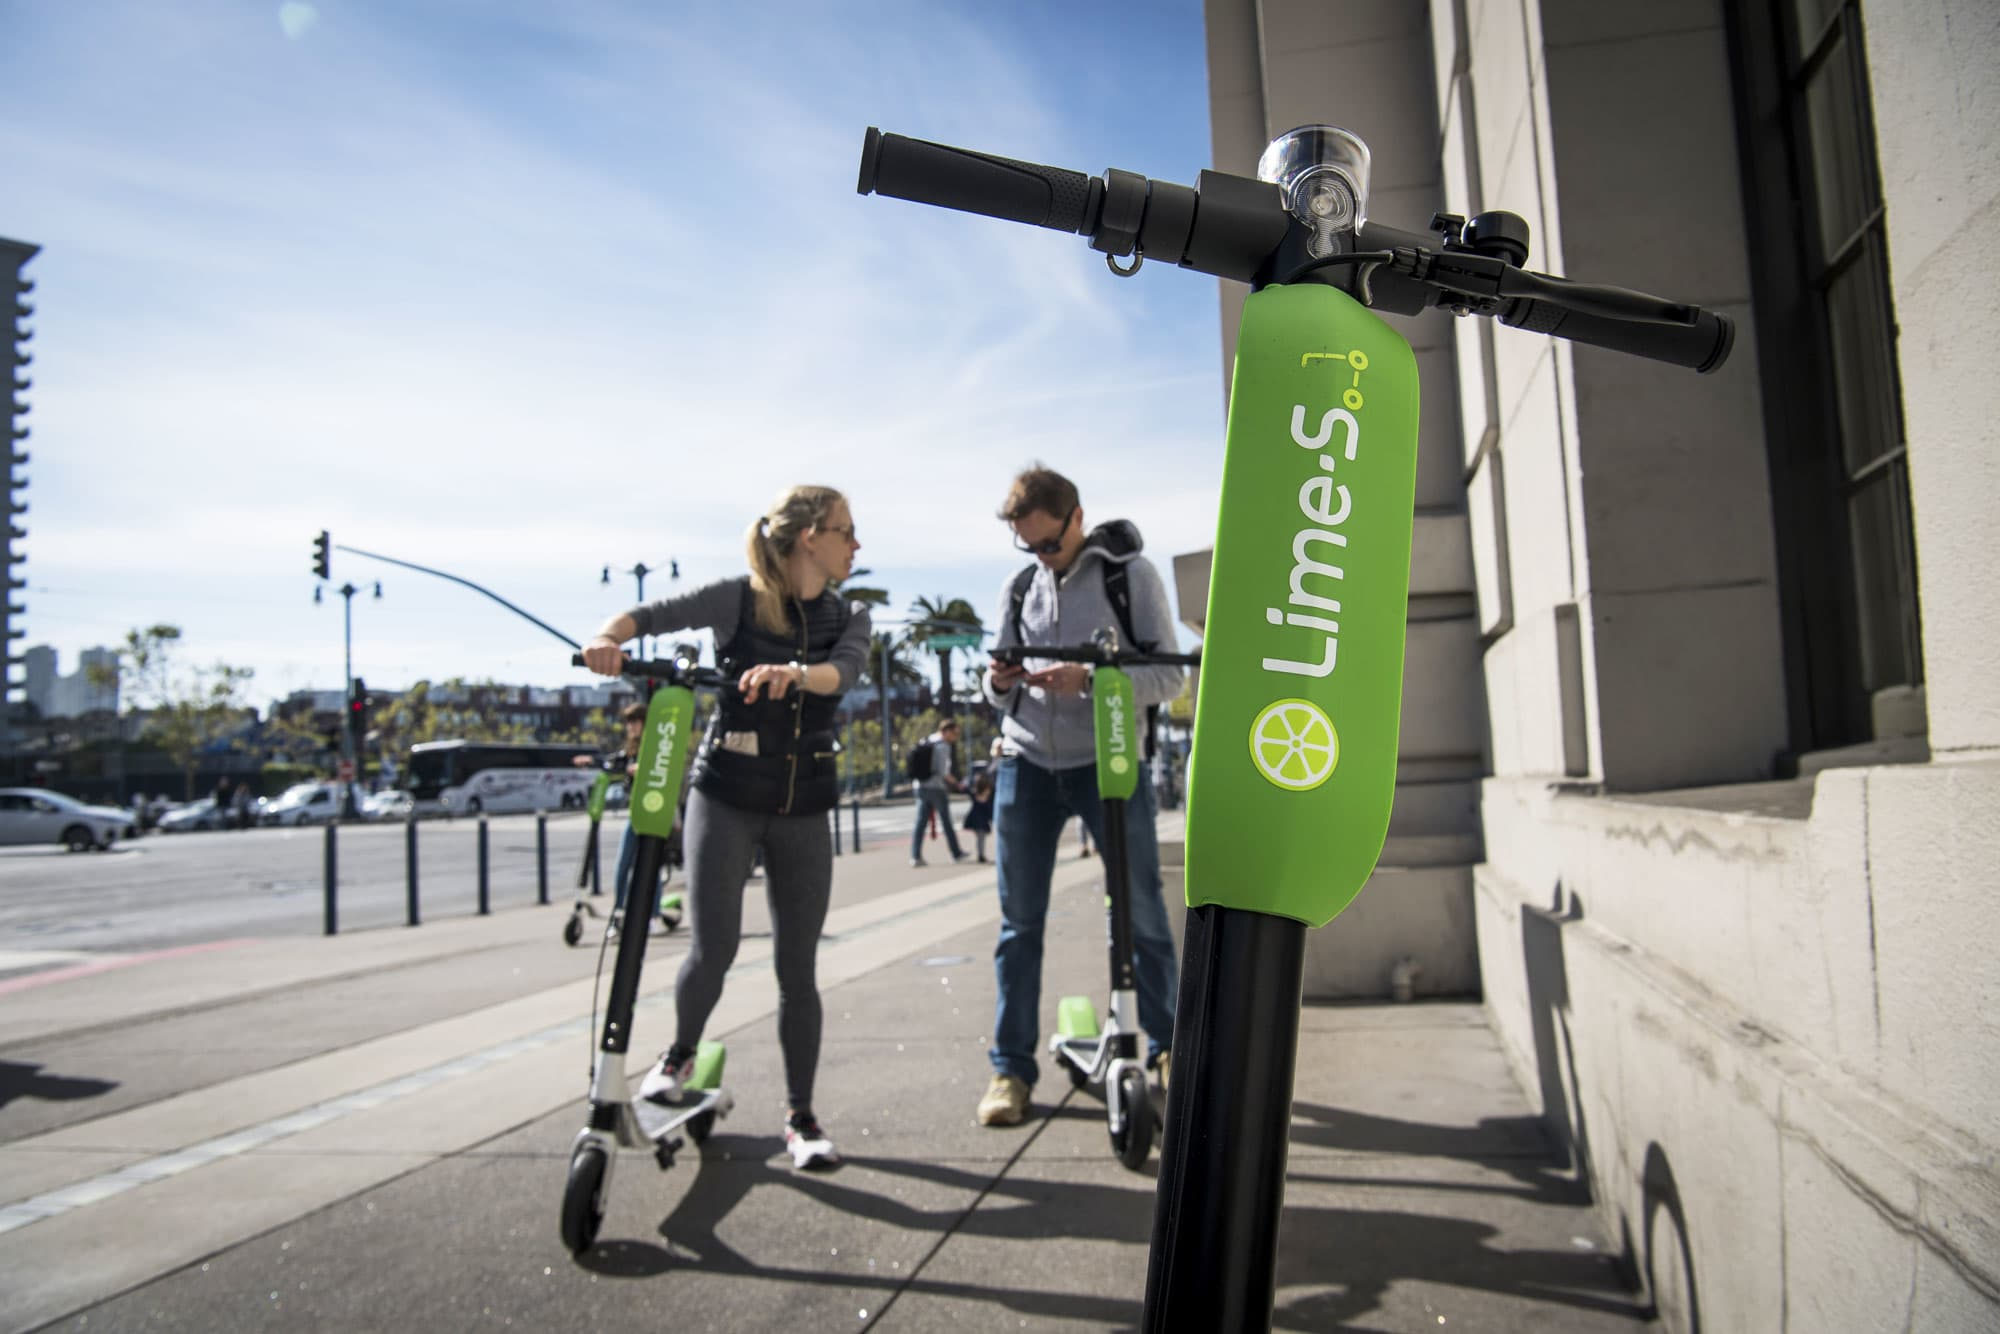 Scooter start-ups like Lime and Bird: why investors love